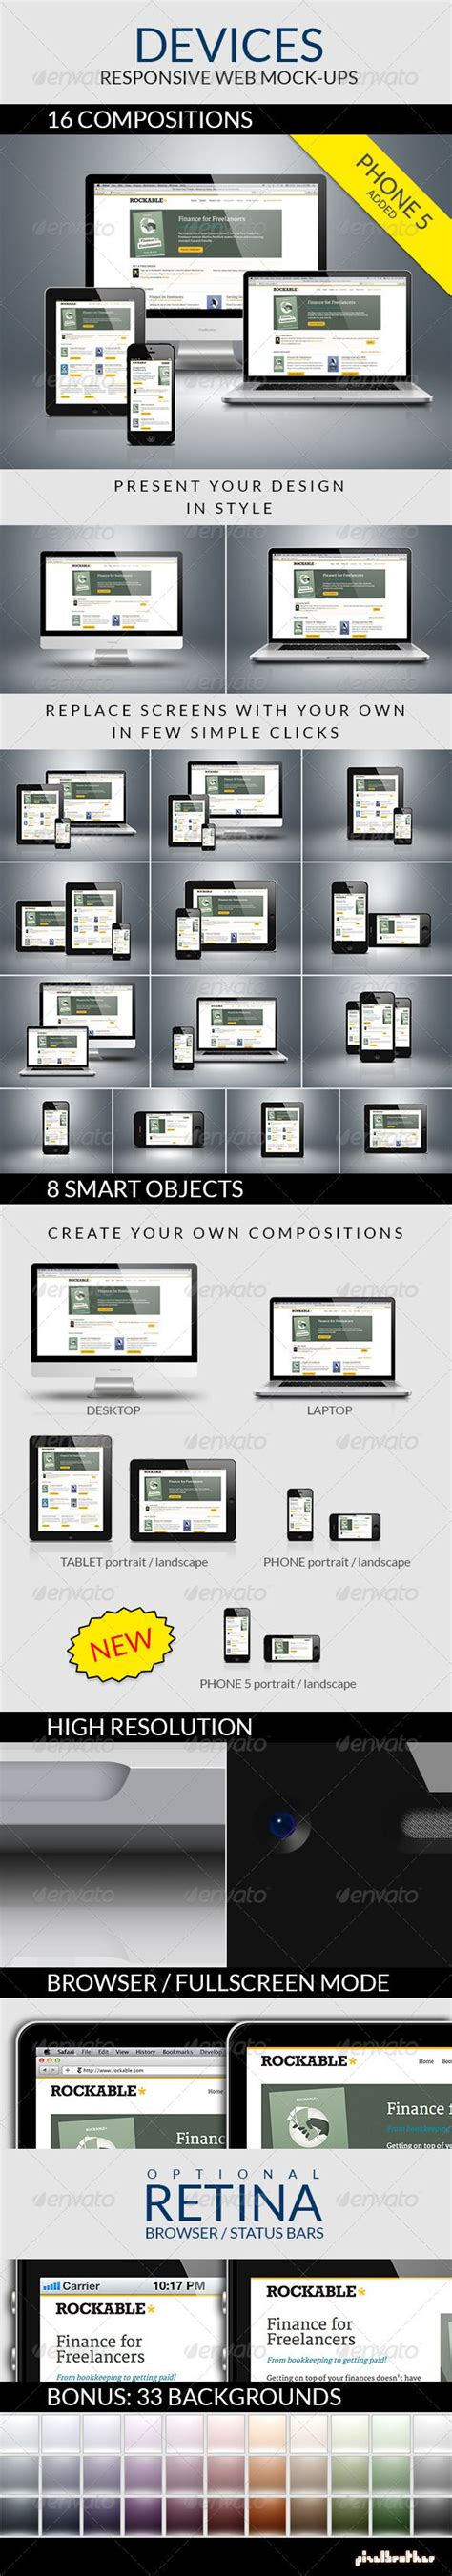 iphone device layout devices responsive web mock ups blurred background